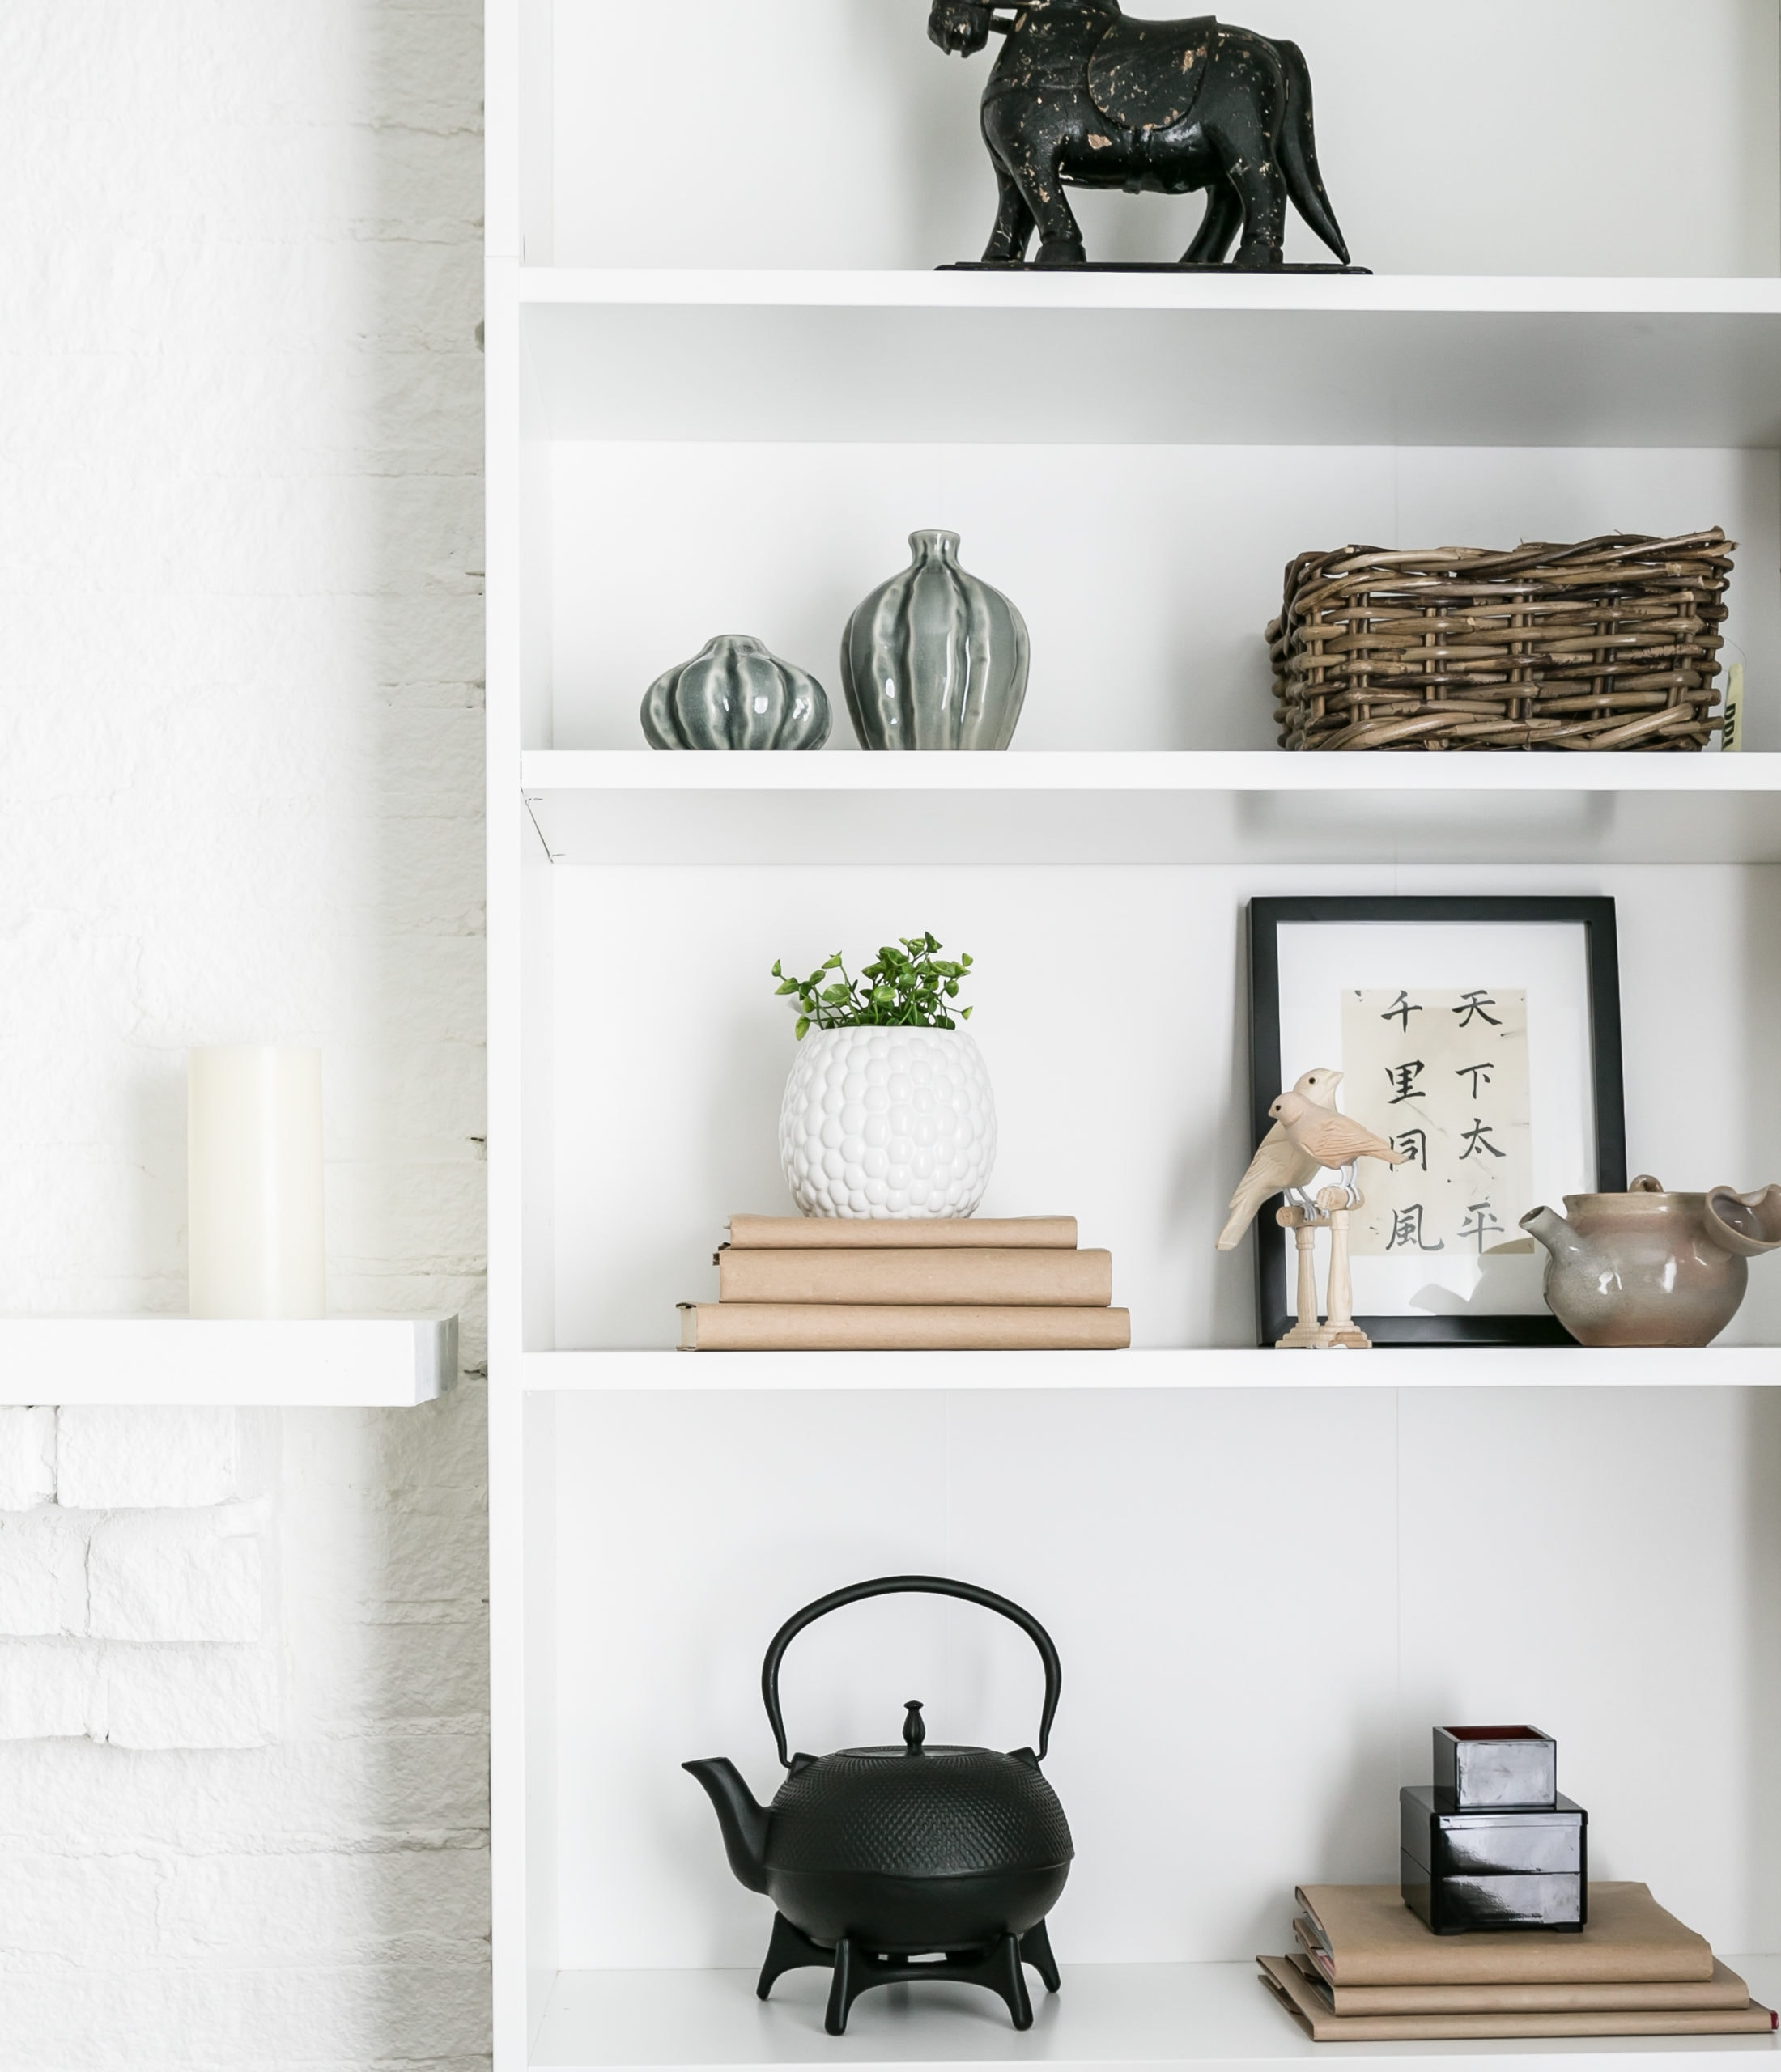 Bright shelving unit with an assortment decorations on it